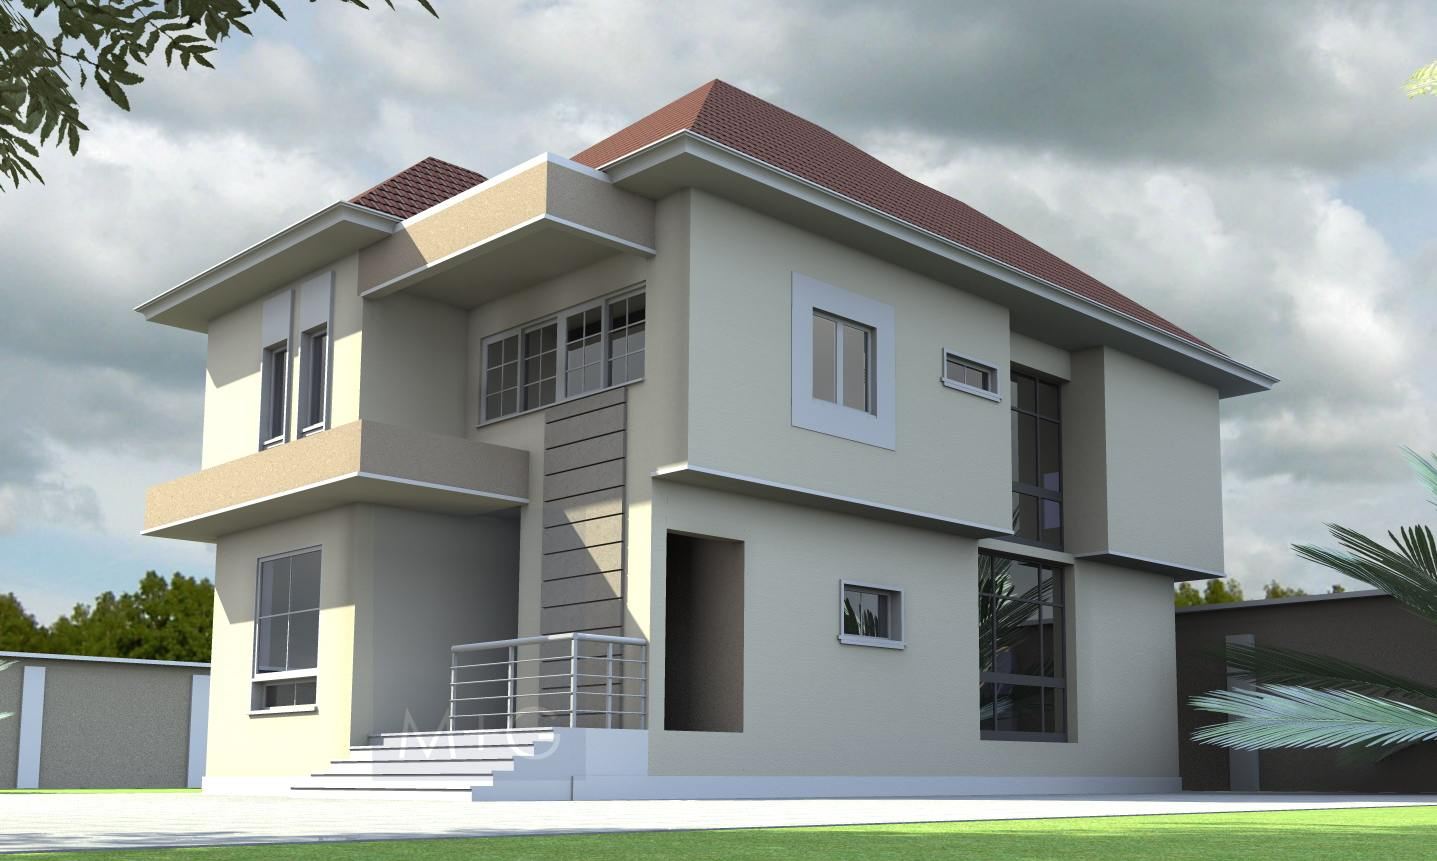 House plans and design architectural designs for for Nigeria house plans